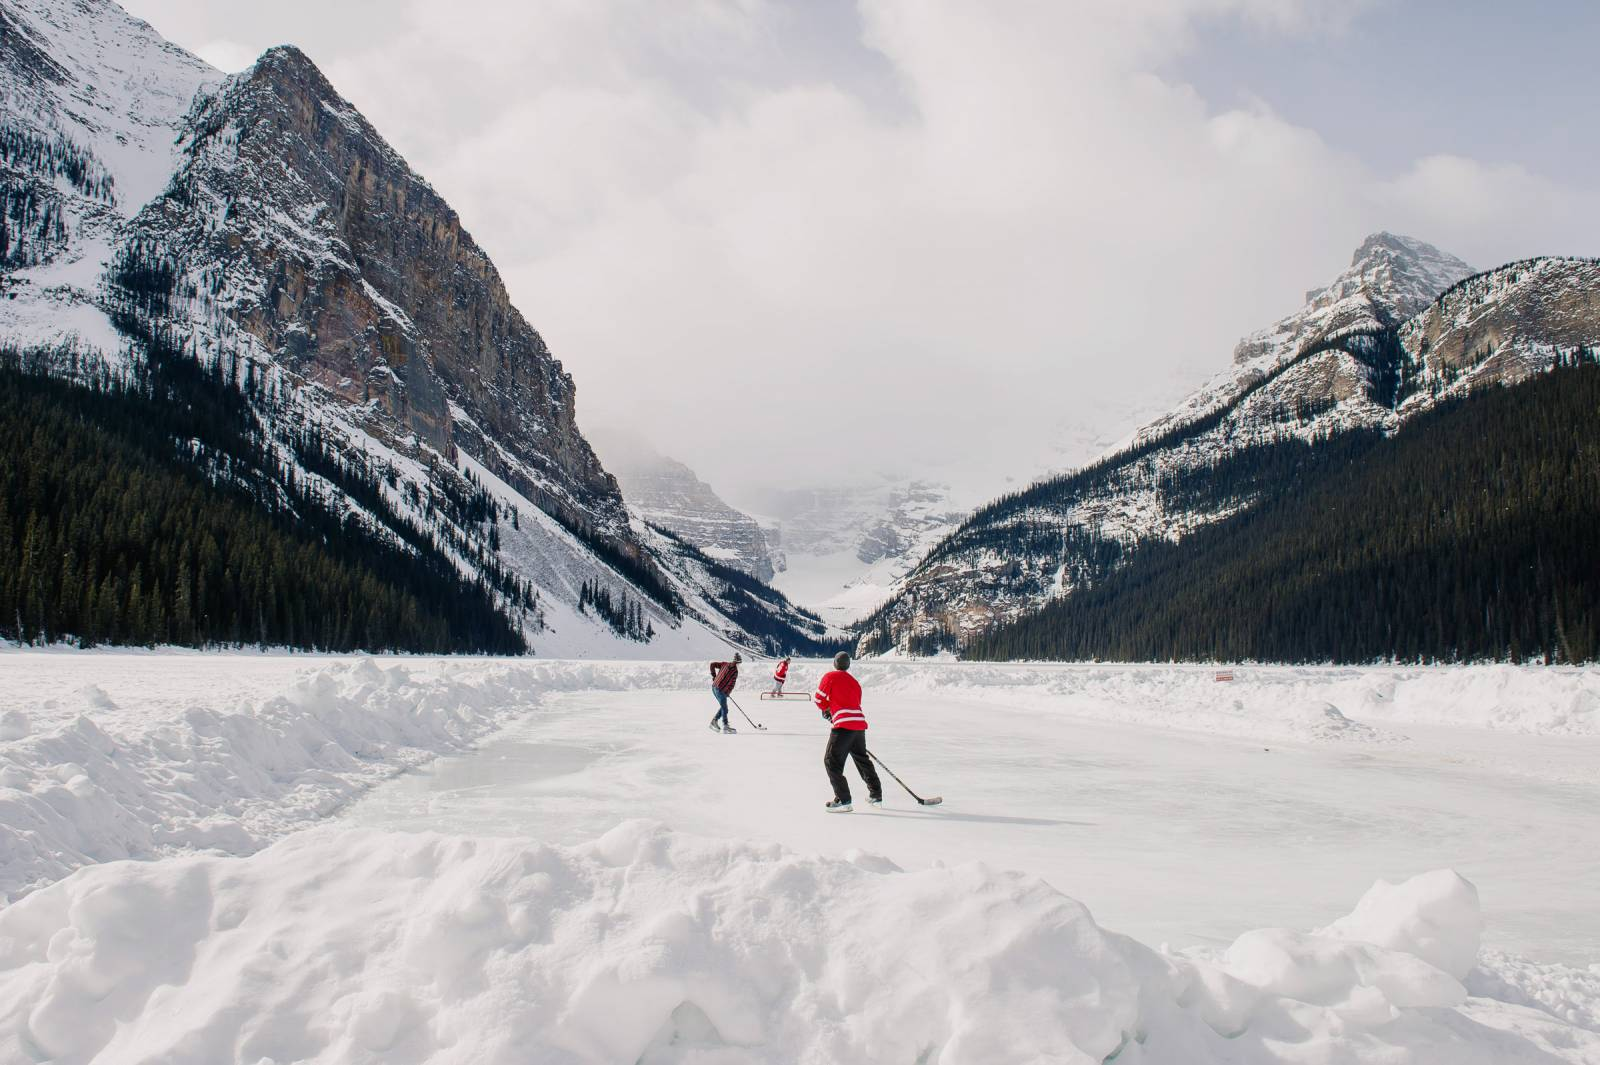 Province of Canada - Lake Louise Skating Rink